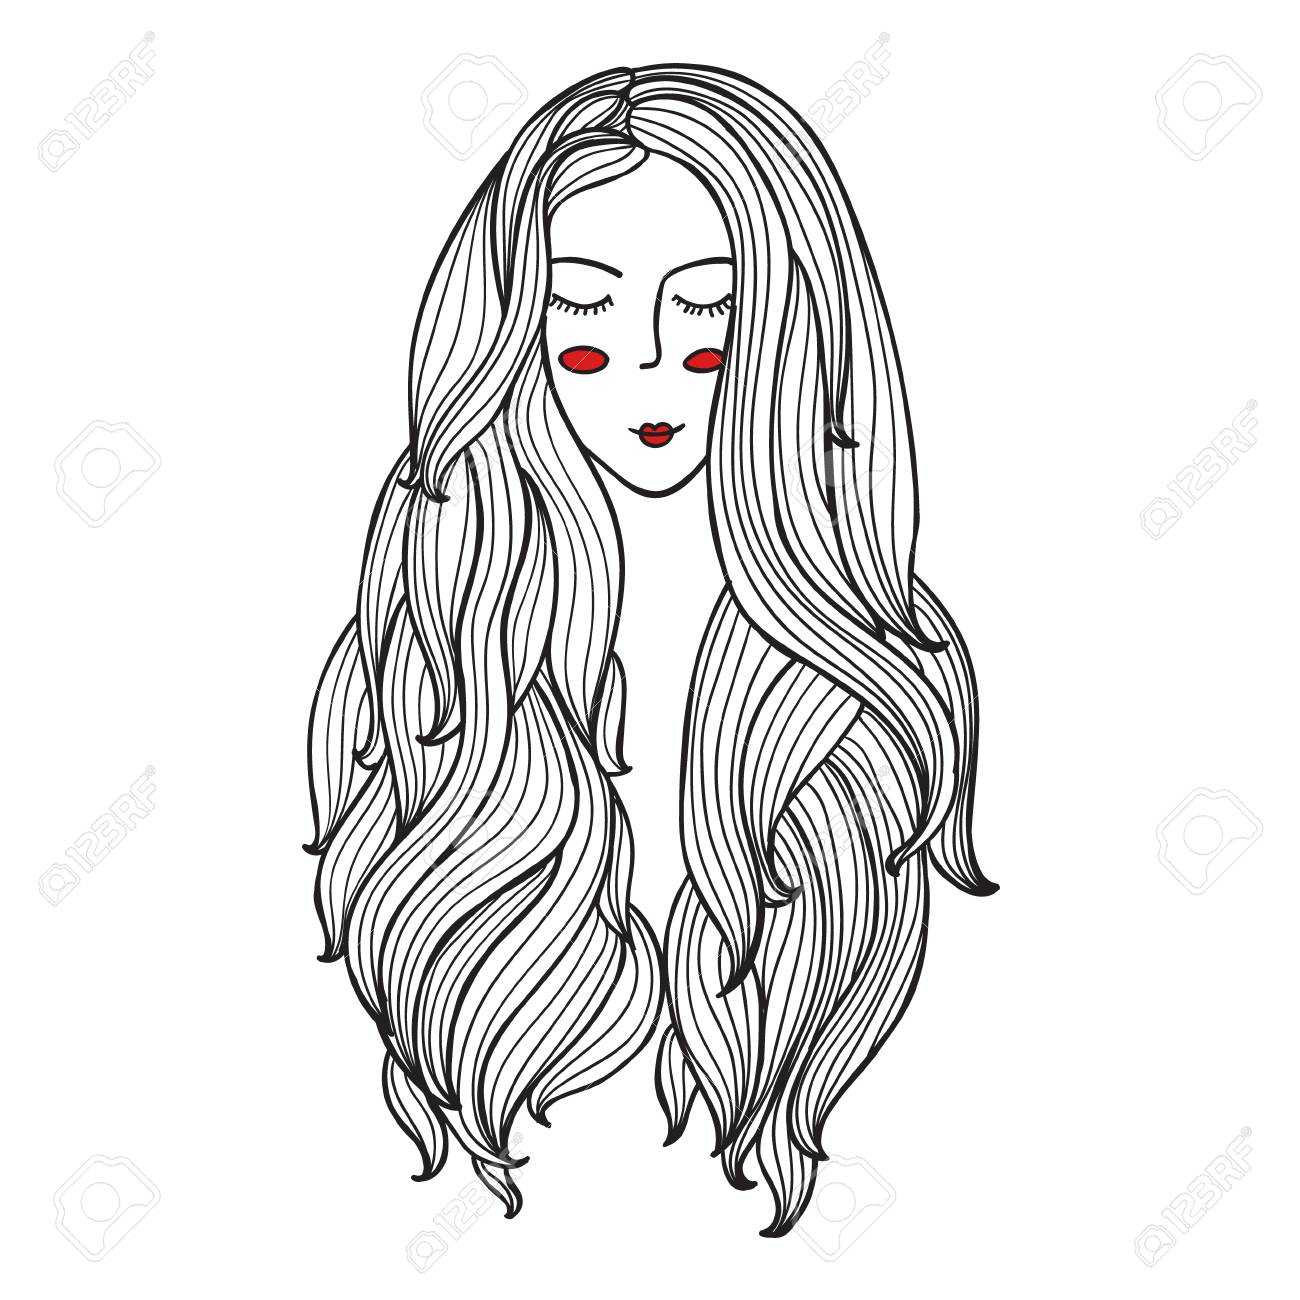 Vector Illustration Blanco Y Negro Mujer Con Flores Hair.coloring ...